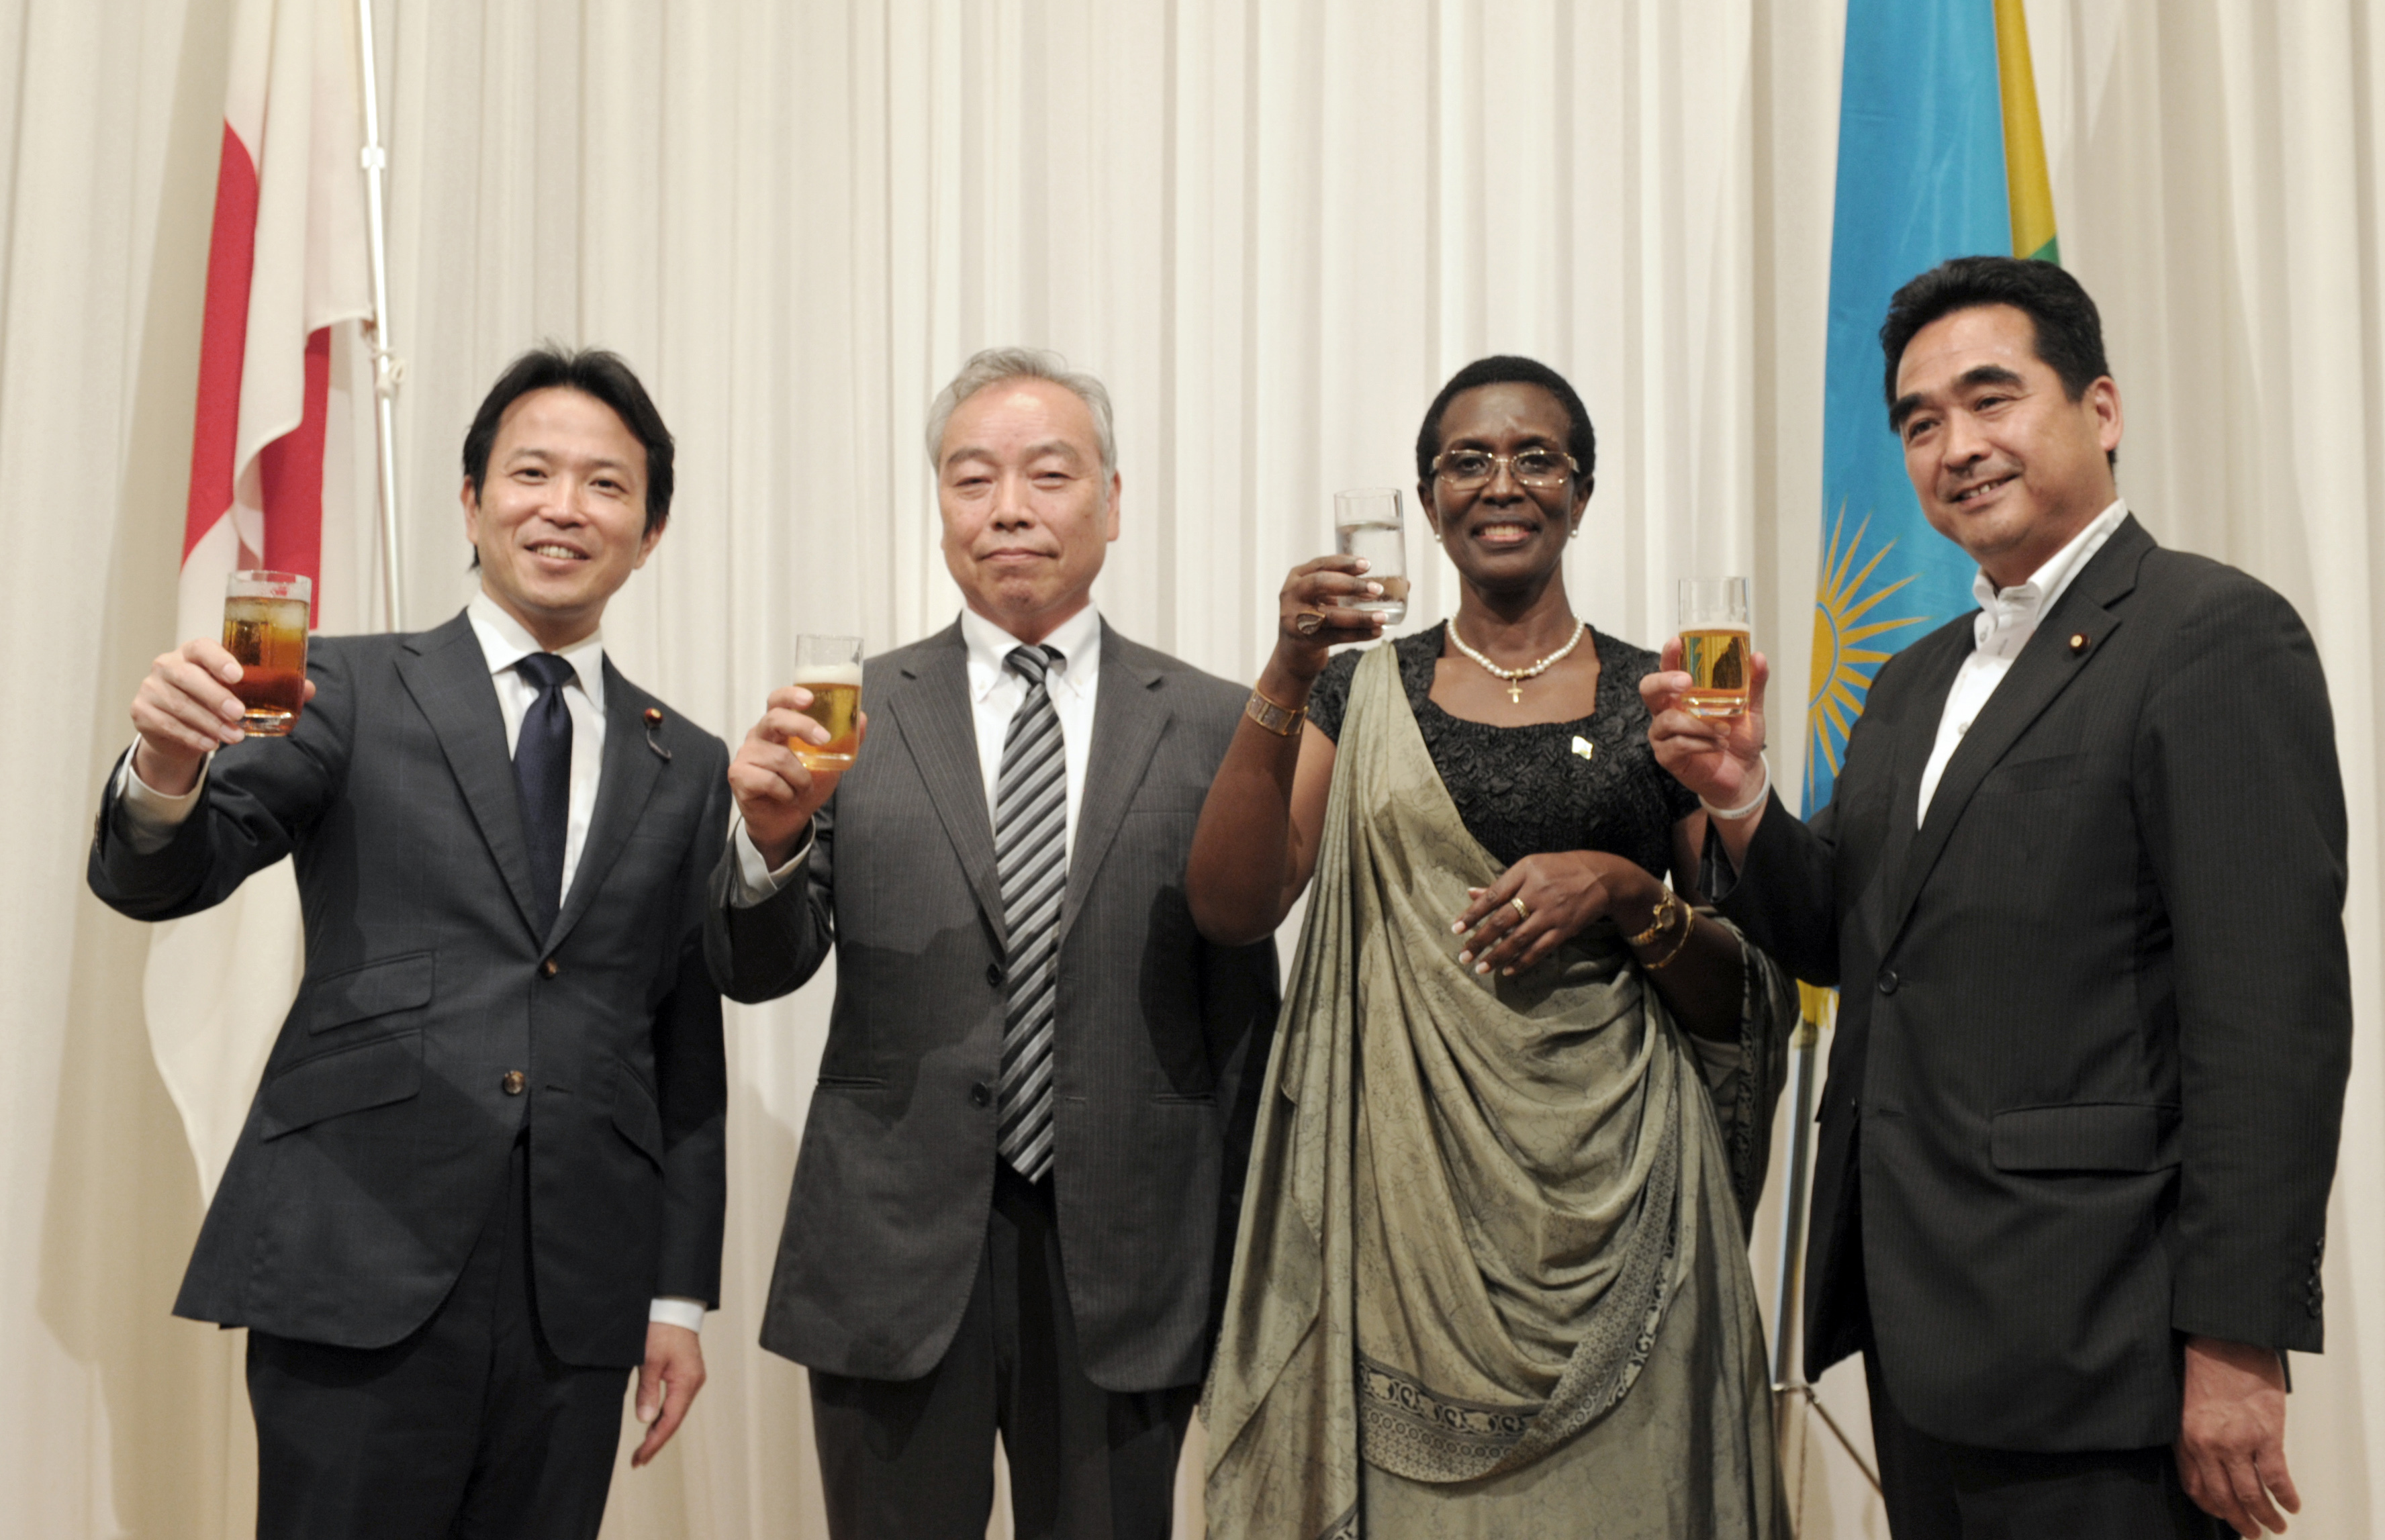 Rwandan Ambassador Venetia Sebudandi (second from right) prepares for a toast with, from left, Parliamentary Vice-Minister for foreign Affairs Masakazu Hamachi; Specialty Coffee Association of Japan President Shinji Sekine; and State Minister of Finance and Secretary-General of the Japan-Rwanda Parliamentary League of Friendship Manabu Sakai during a reception to celebrate the country's Liberation Day and Independence Day at the Toshi Center Hotel, in Tokyo on July 4. | YOSHIAKI MIURA